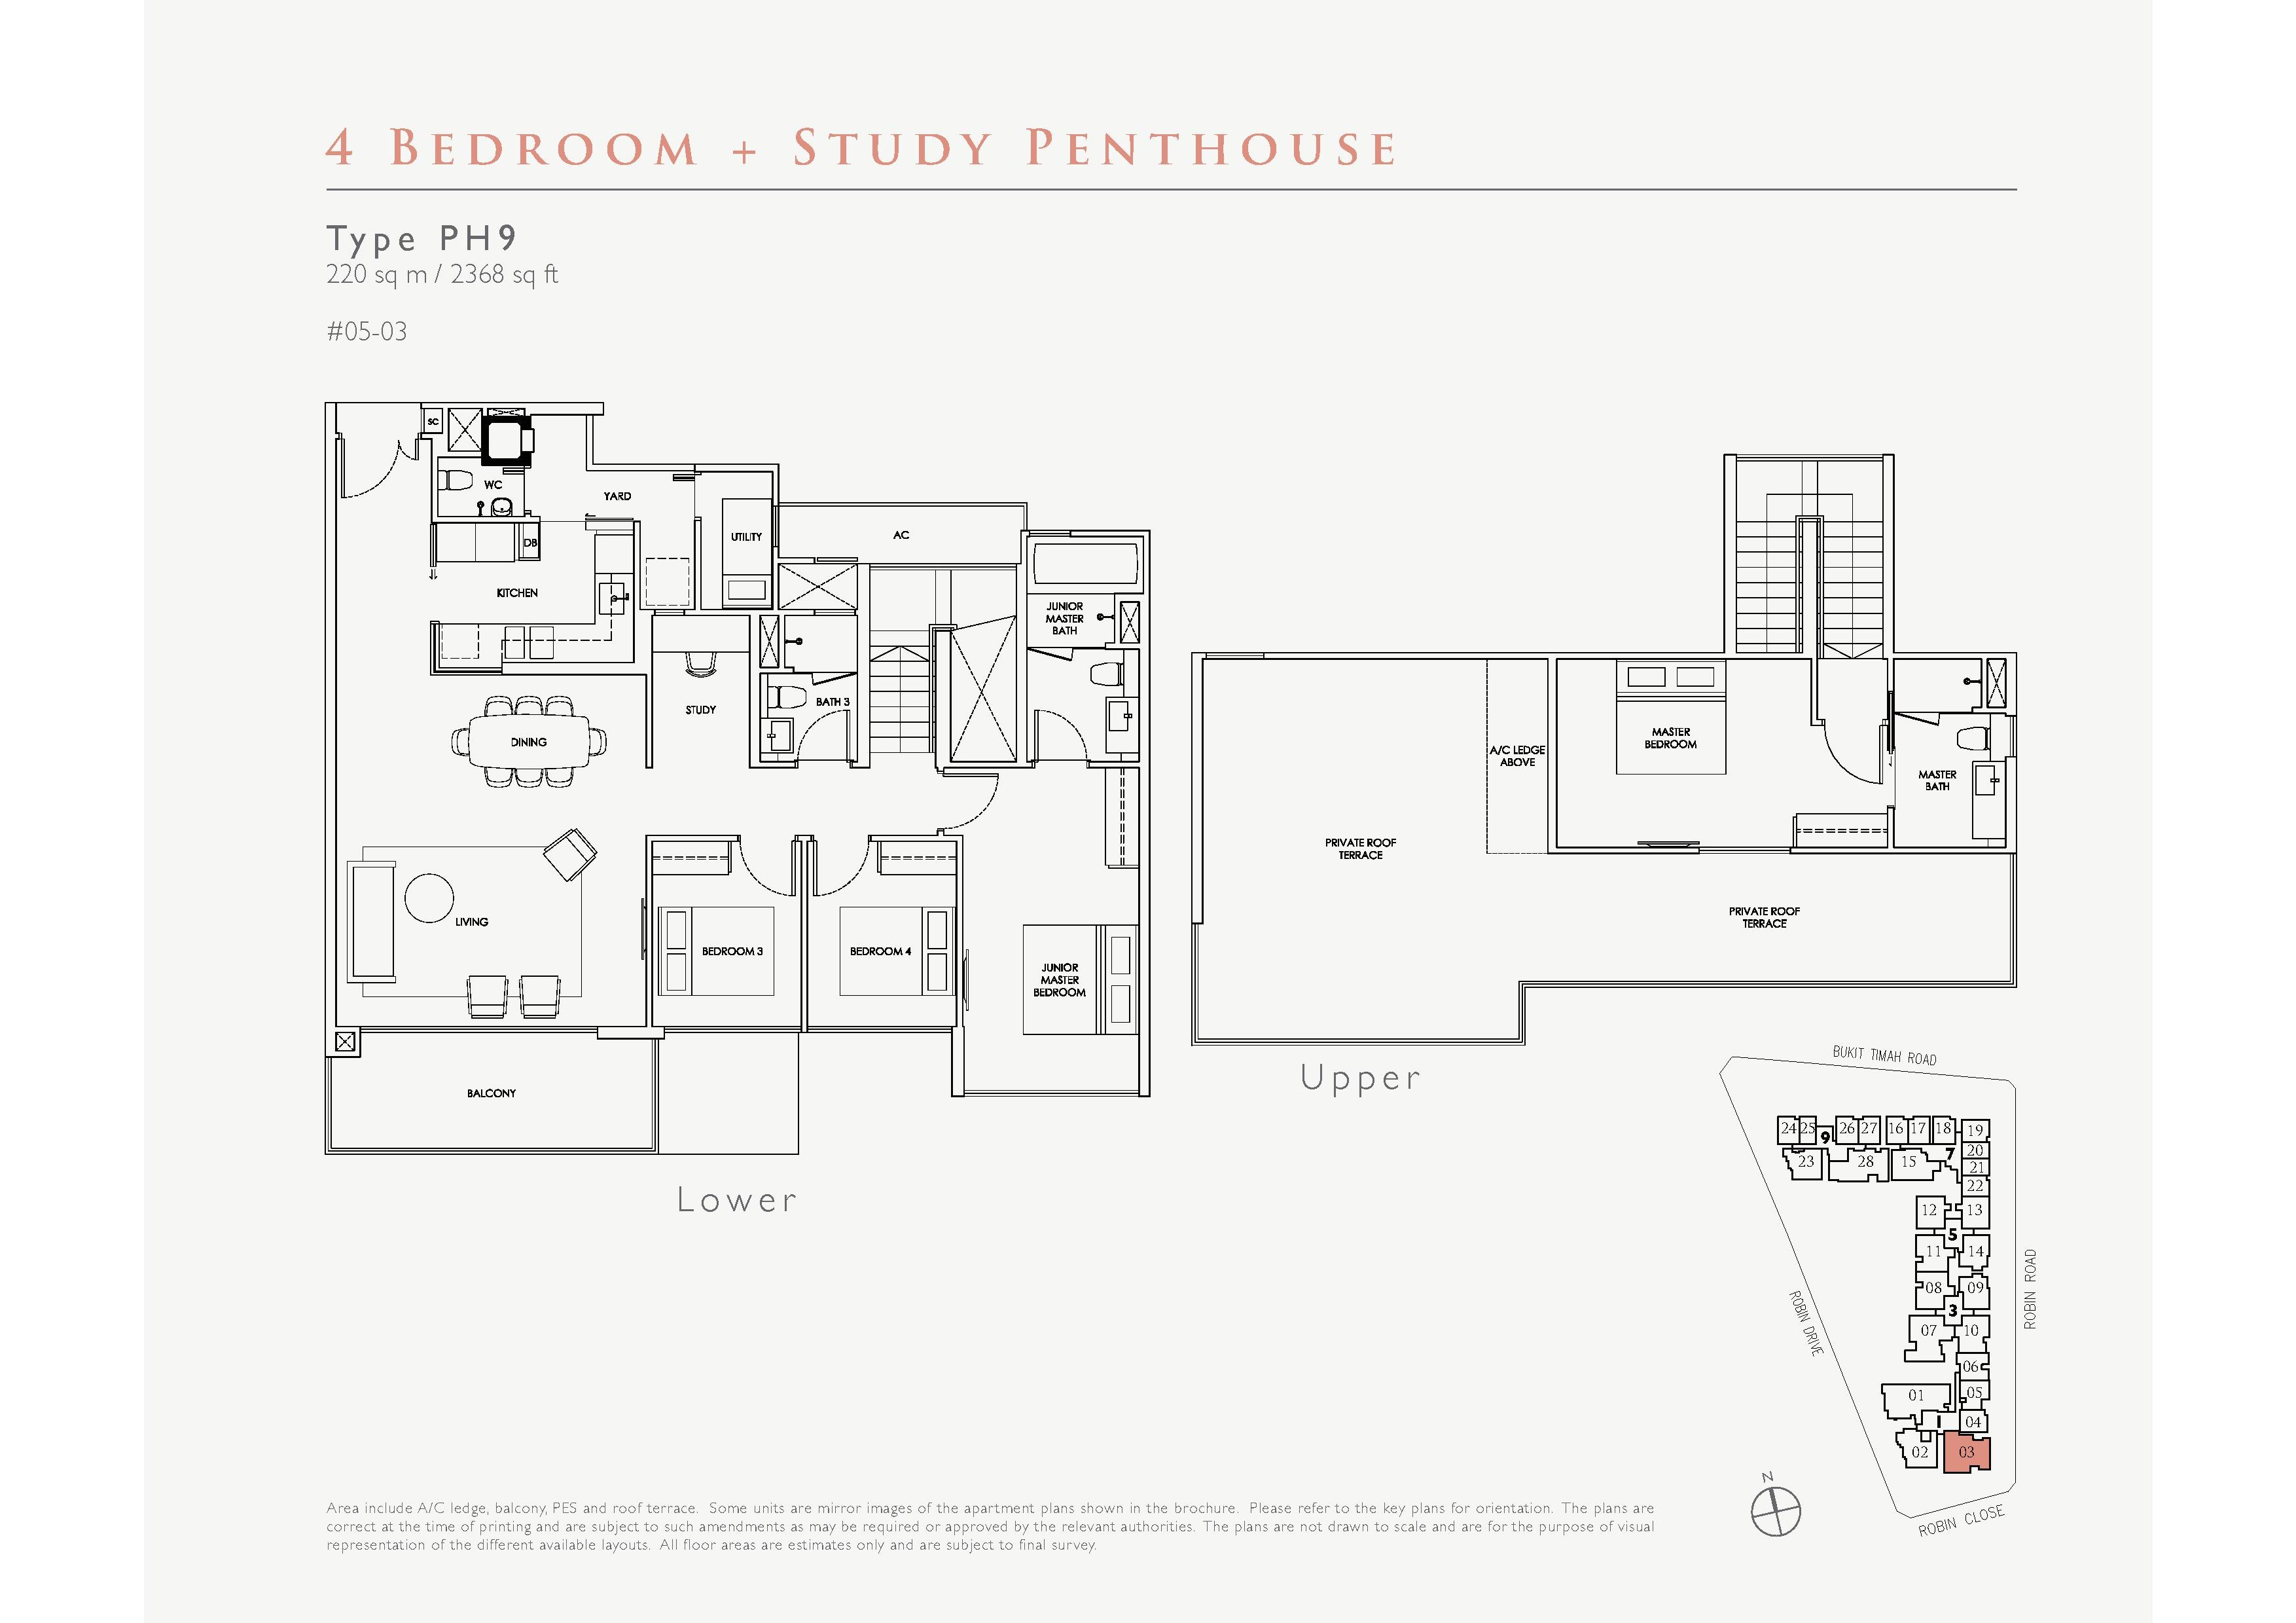 Robin Residences 4 Bedroom + Study Penthouse Floor Plans Type PH9